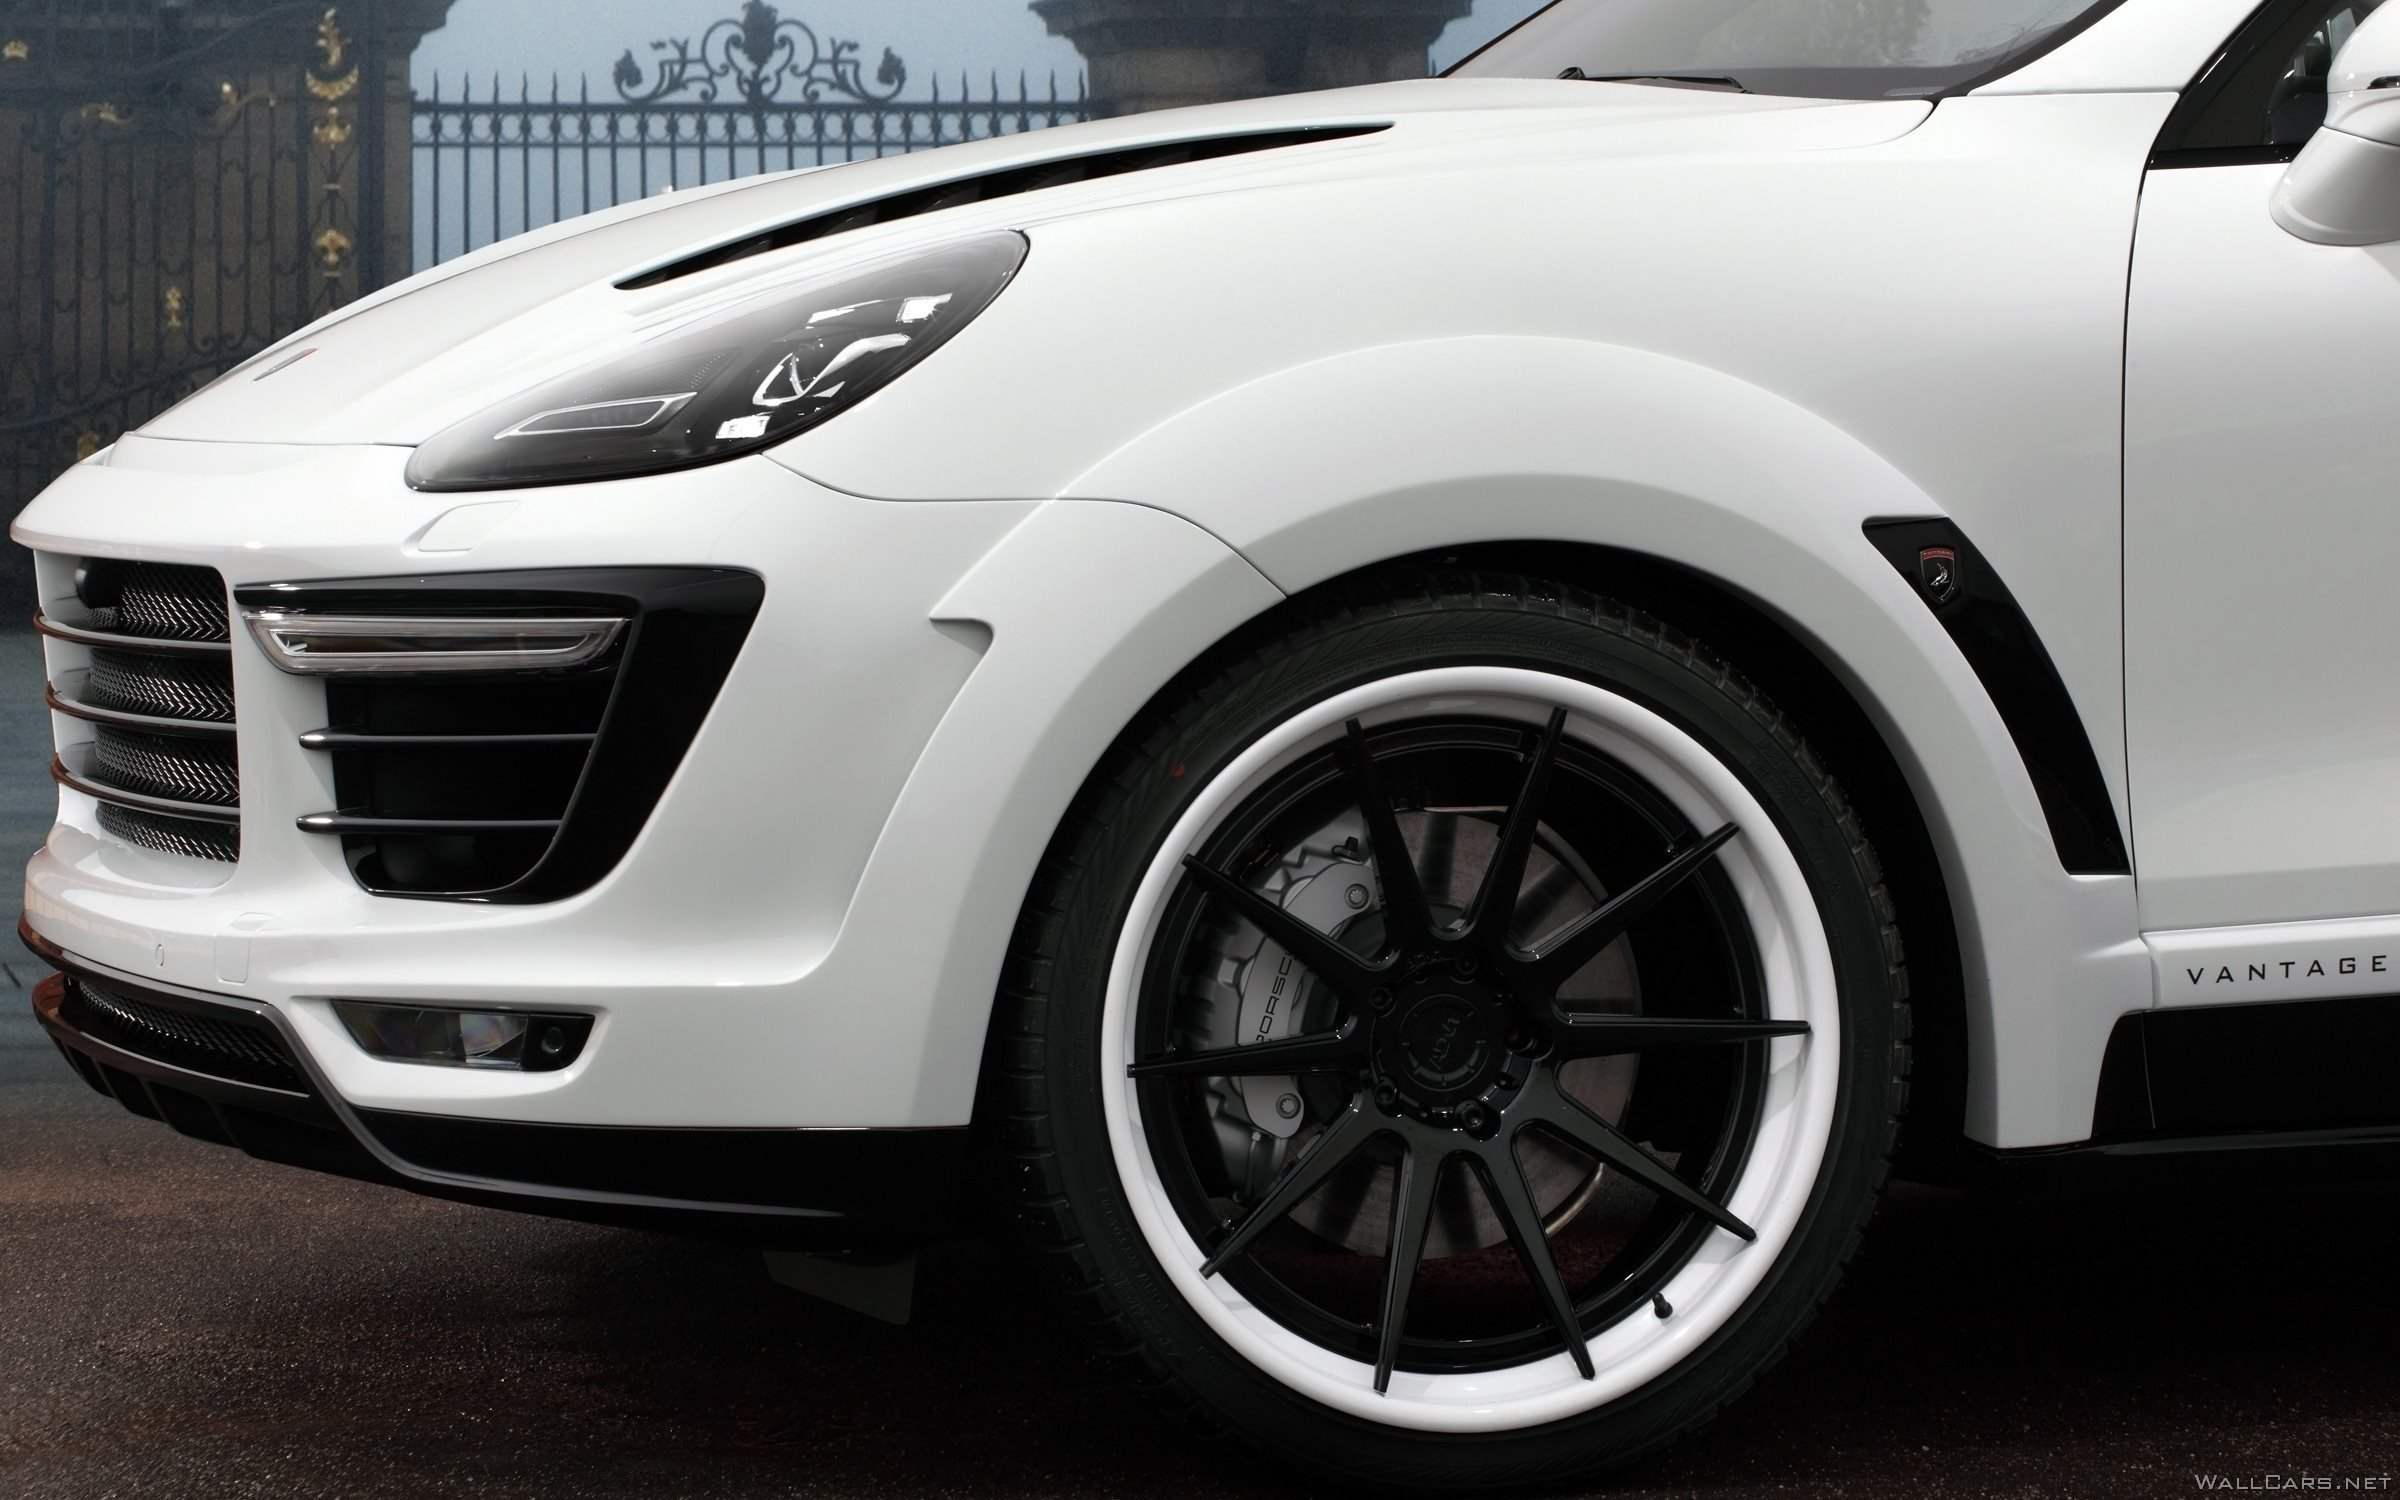 Front, wheels, tuning, photo, Porsche Cayenne Vantage, TopCar, 2015, bumper, white